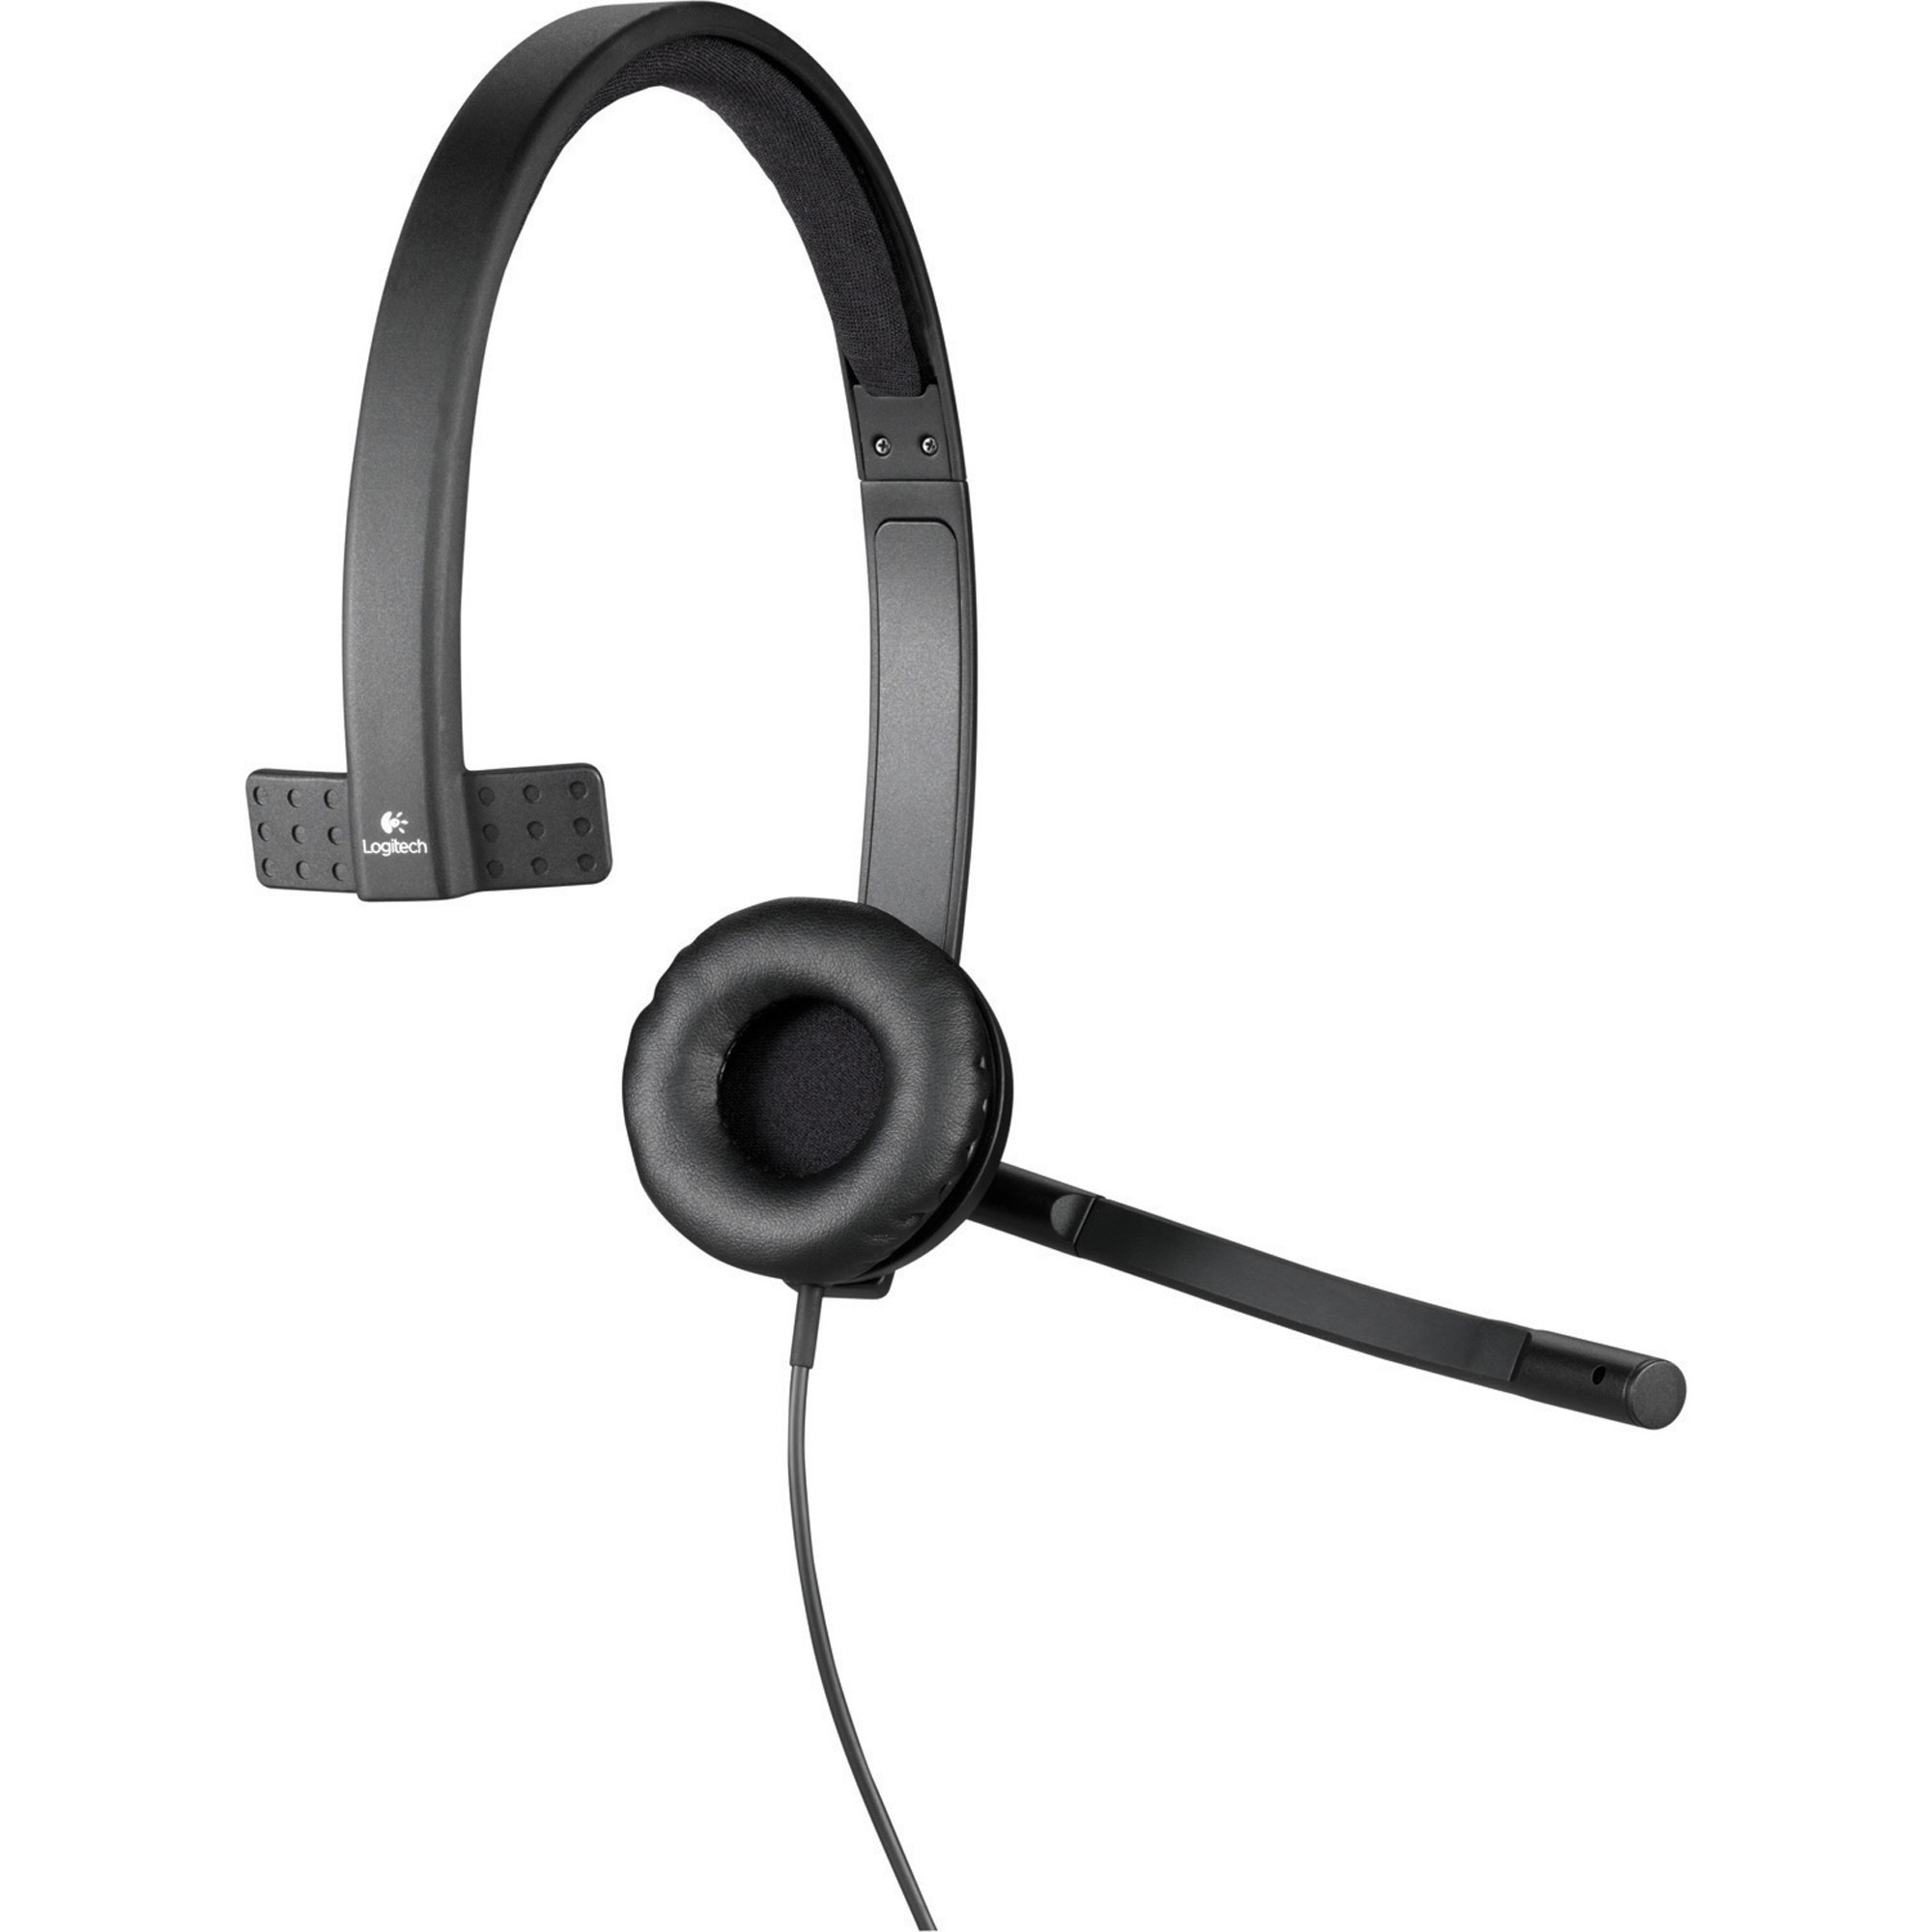 452265566a5 Mono - USB - Wired - 50 Hz - 10 kHz - Over-the-head - Monaural - Supra-aural  - Noise Cancelling Microphone